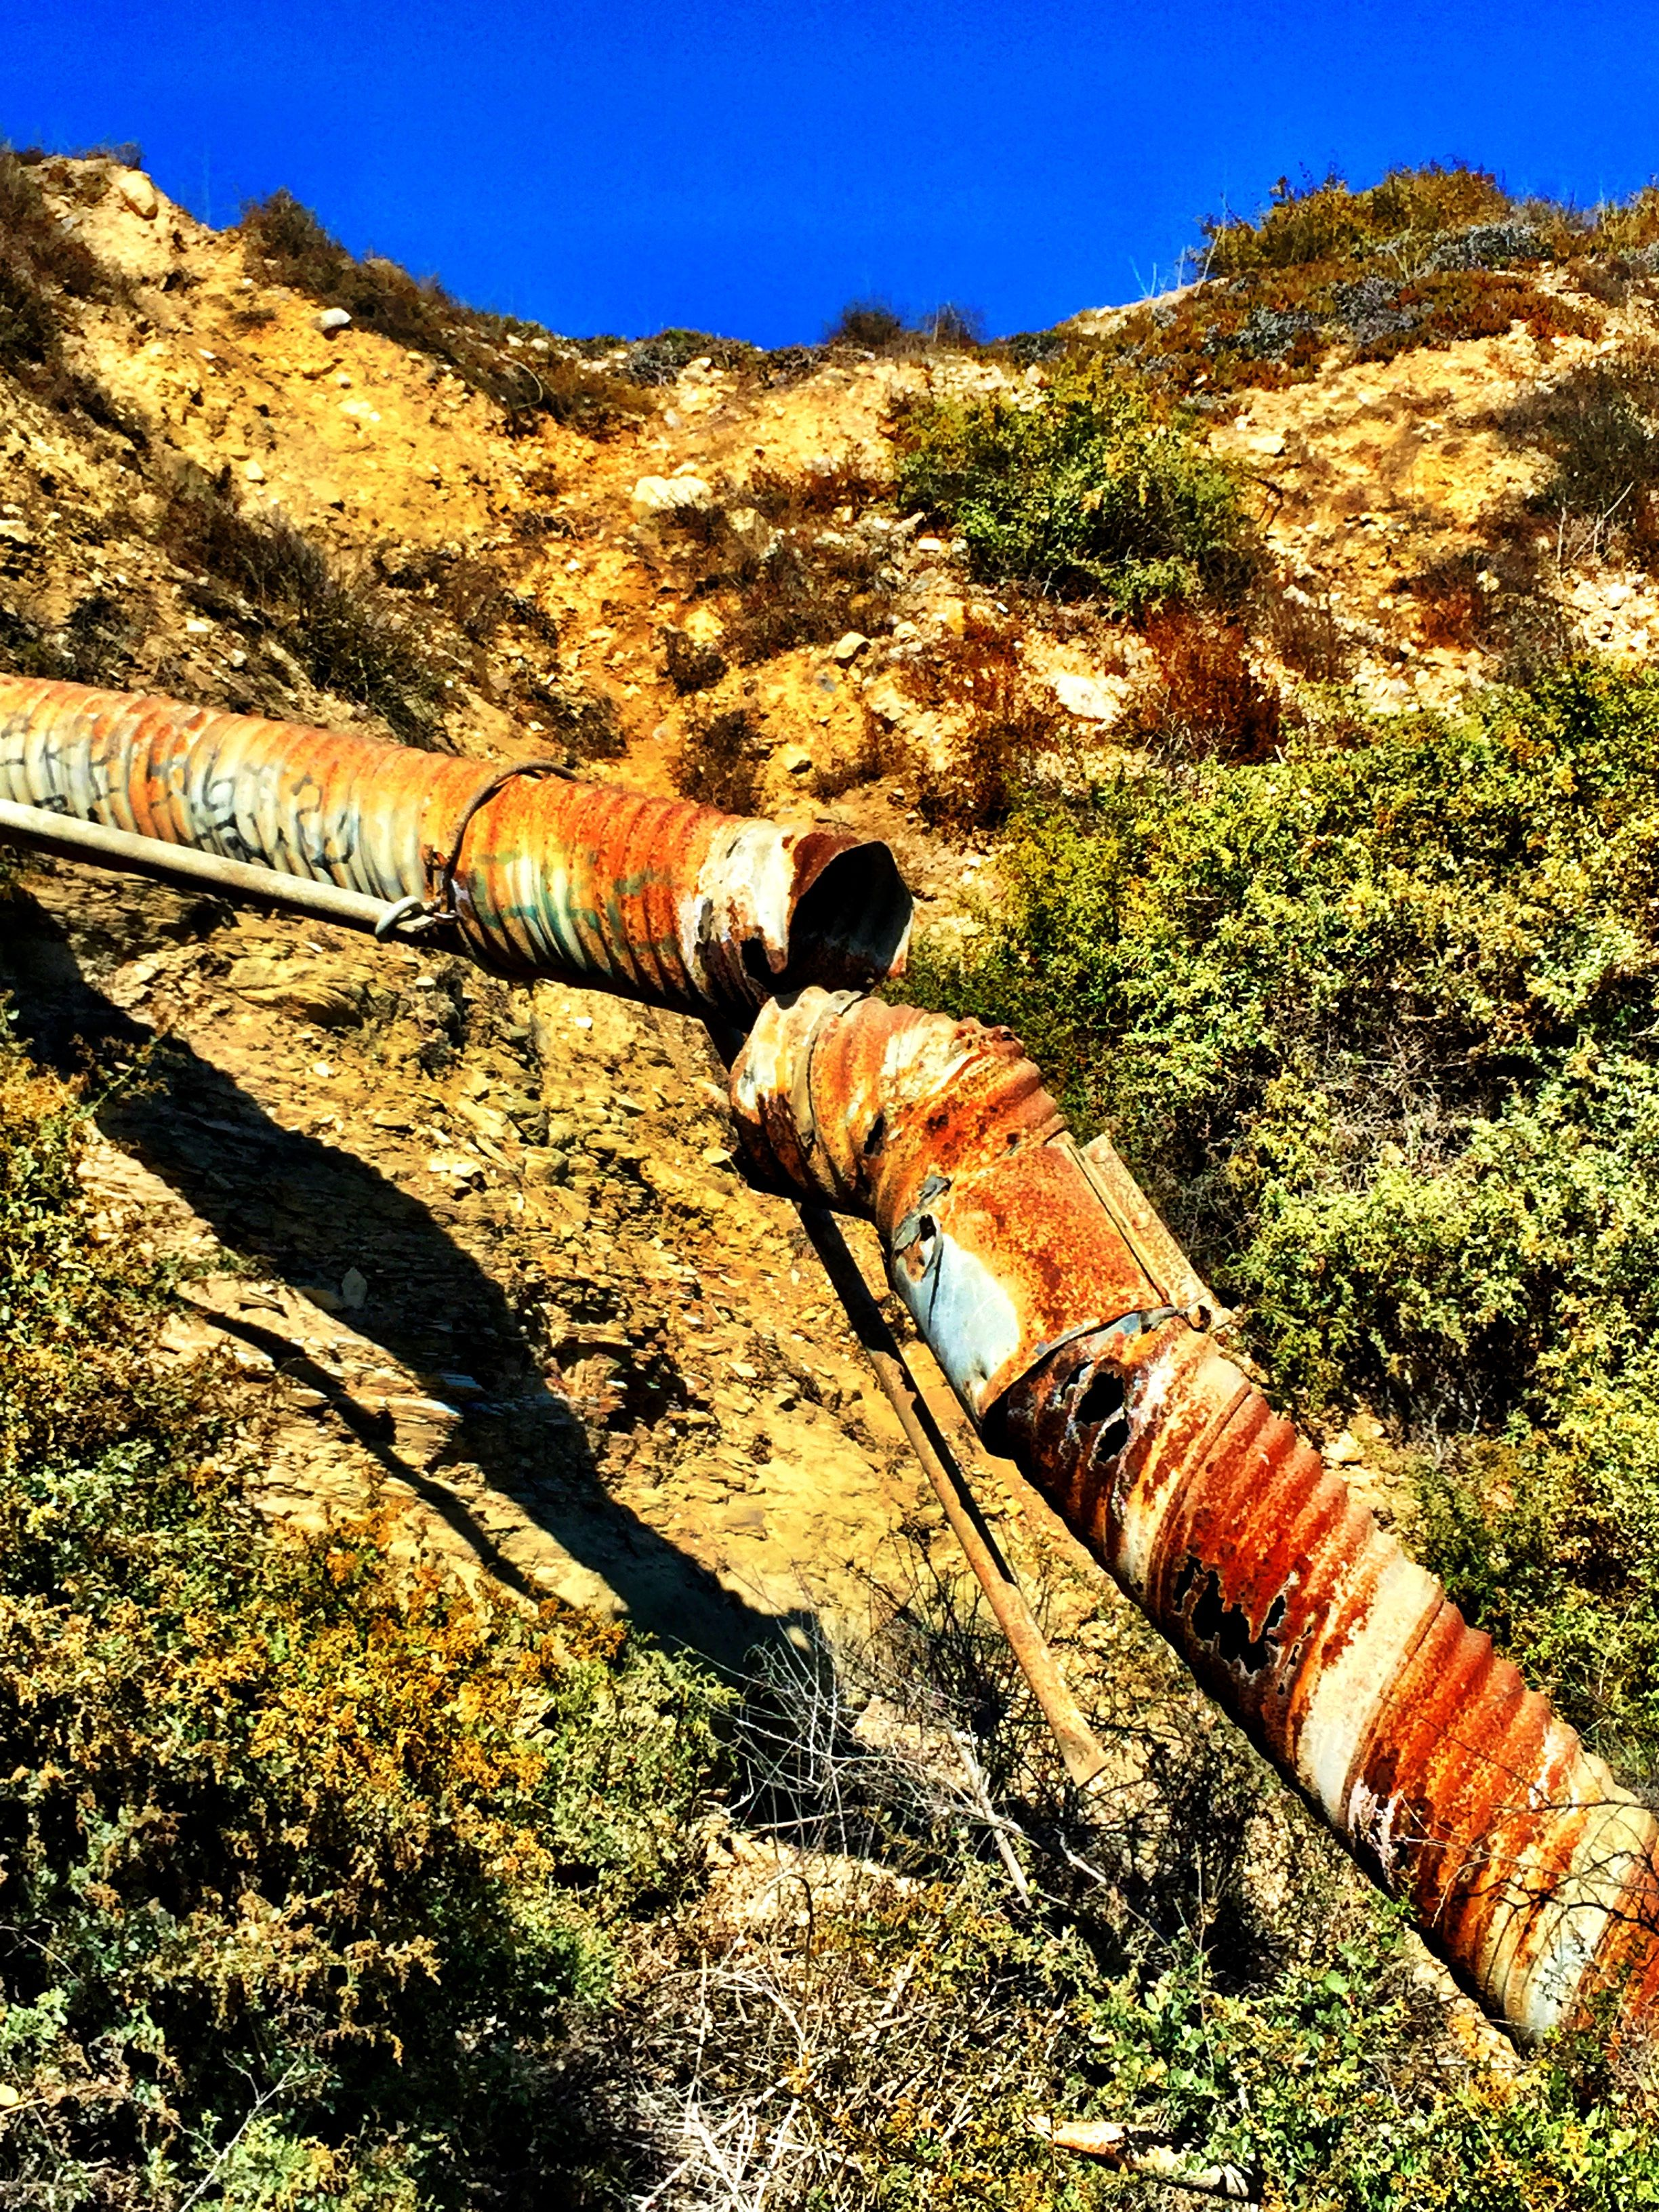 #sanpedro #california #sweetpipes